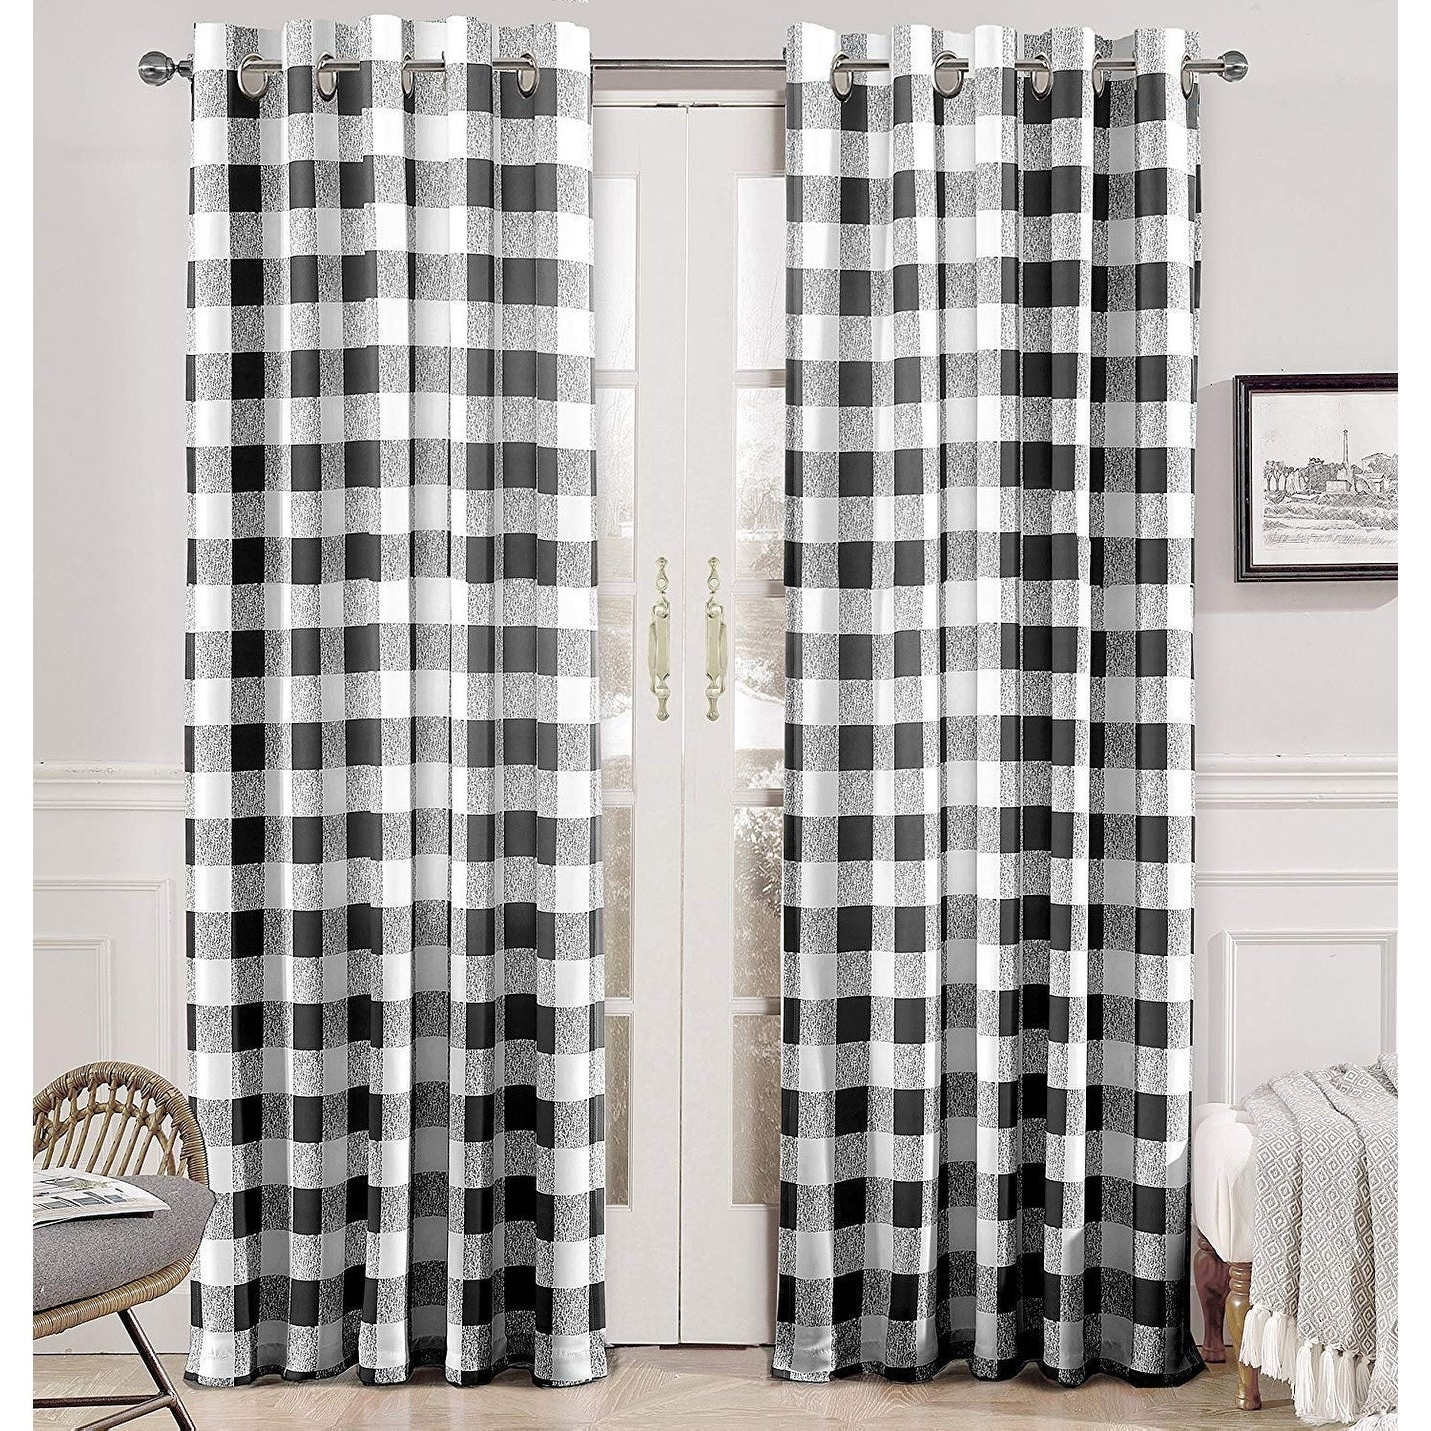 Grainger Buffalo Check Blackout Window Curtains In Most Up To Date Porch & Den Alfalfa Plaid Pattern Room Darkening Window Curtains (View 5 of 20)